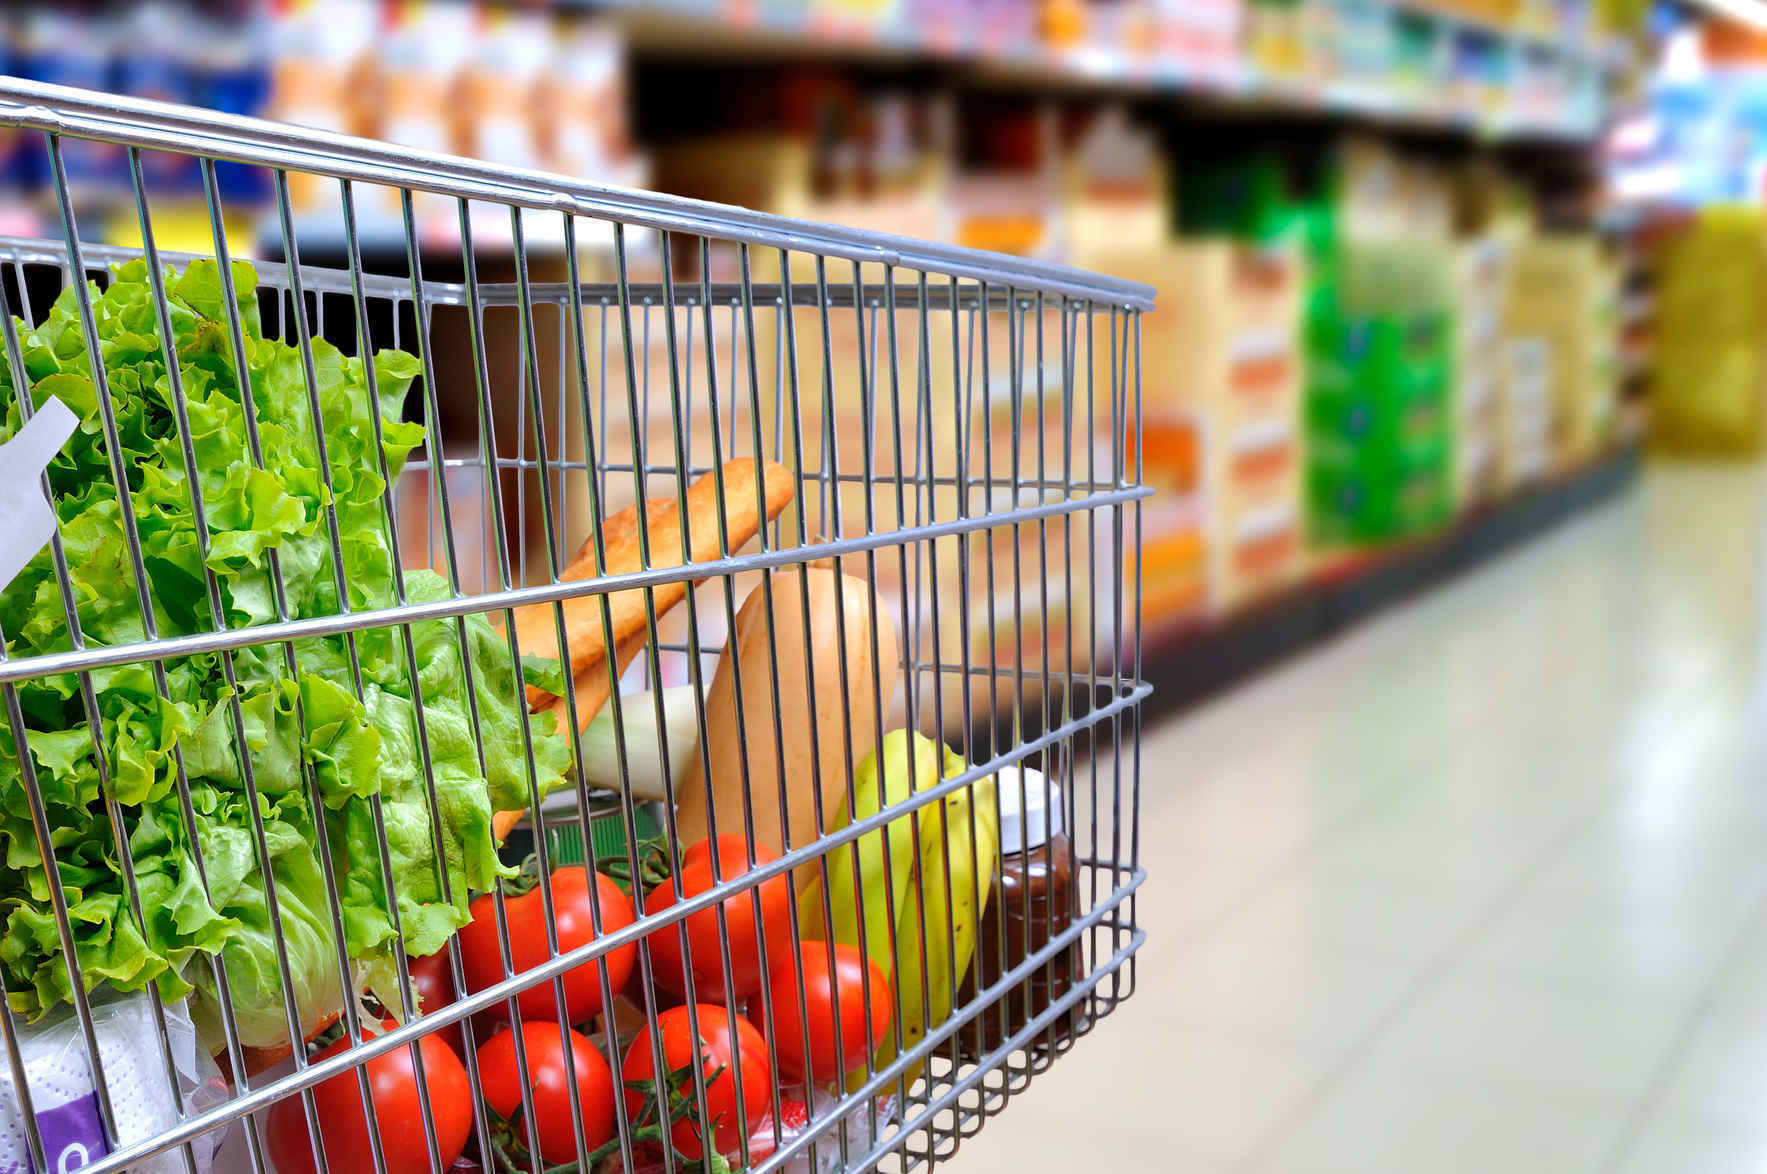 Fill the cart image